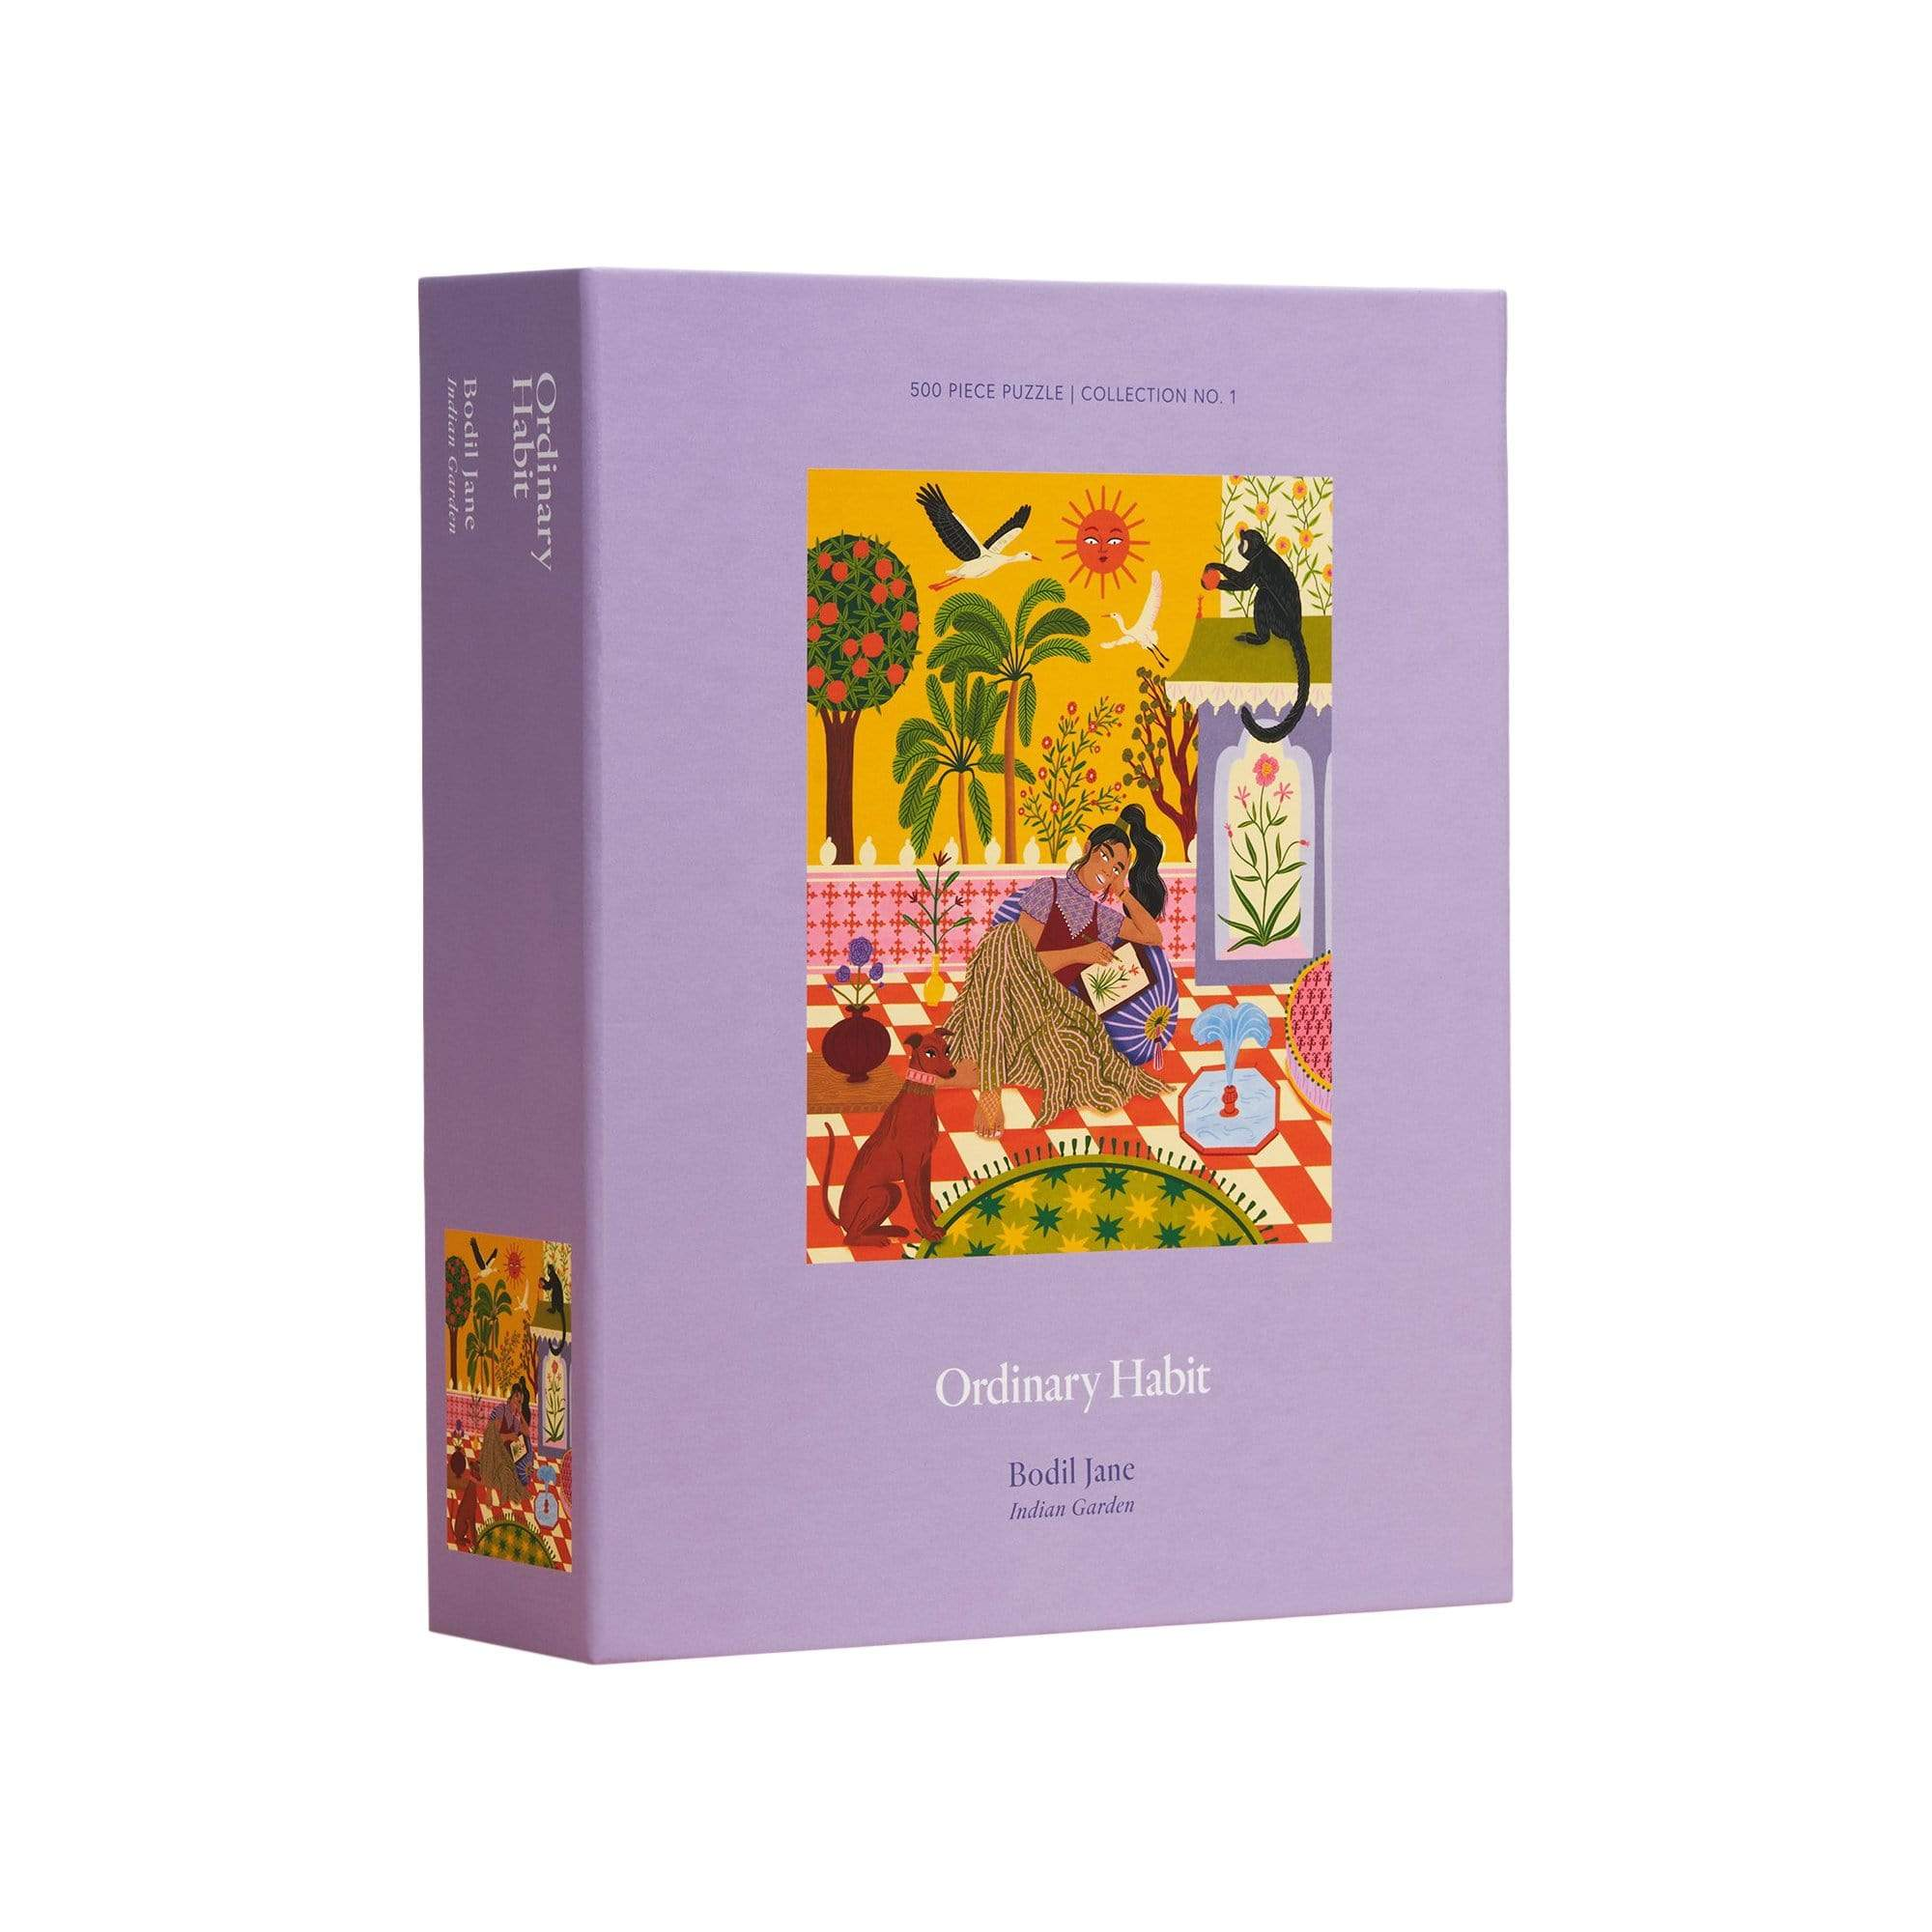 Ordinary Habit 500 Piece Puzzle Indian Garden by Bodil Jane